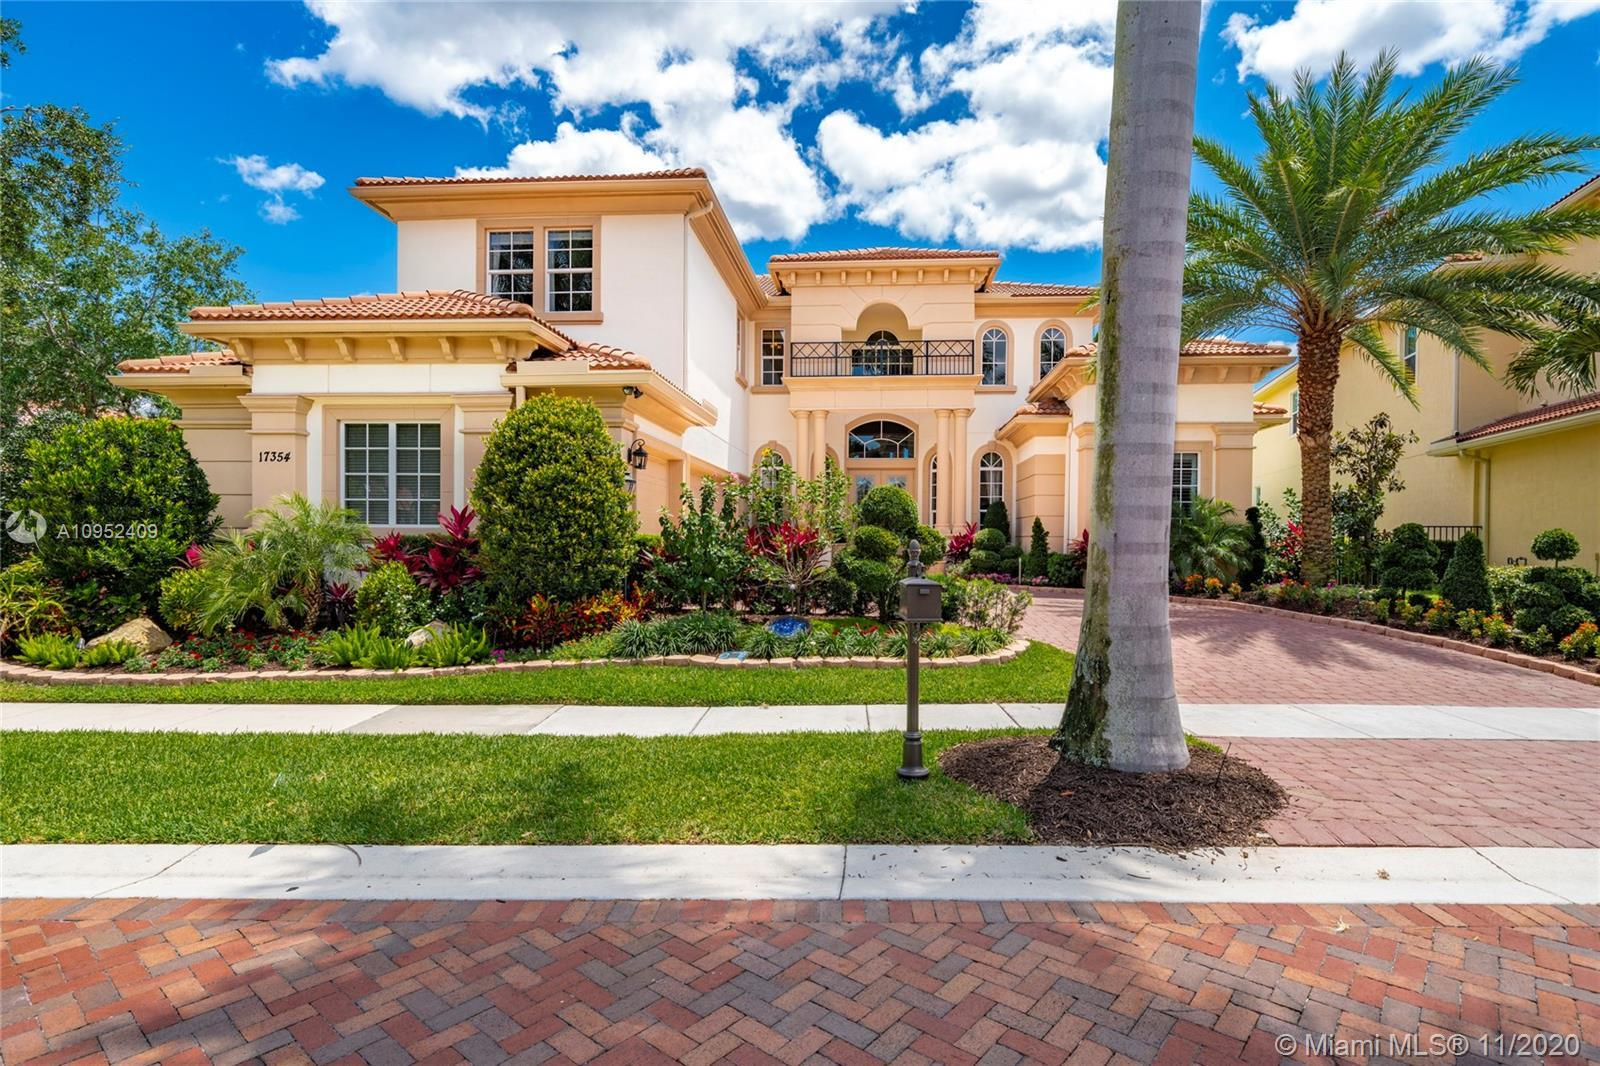 Enjoy the wonderful Boca lifestyle in this elegant 6 bedroom 6 bathroom impeccably renovated home. G